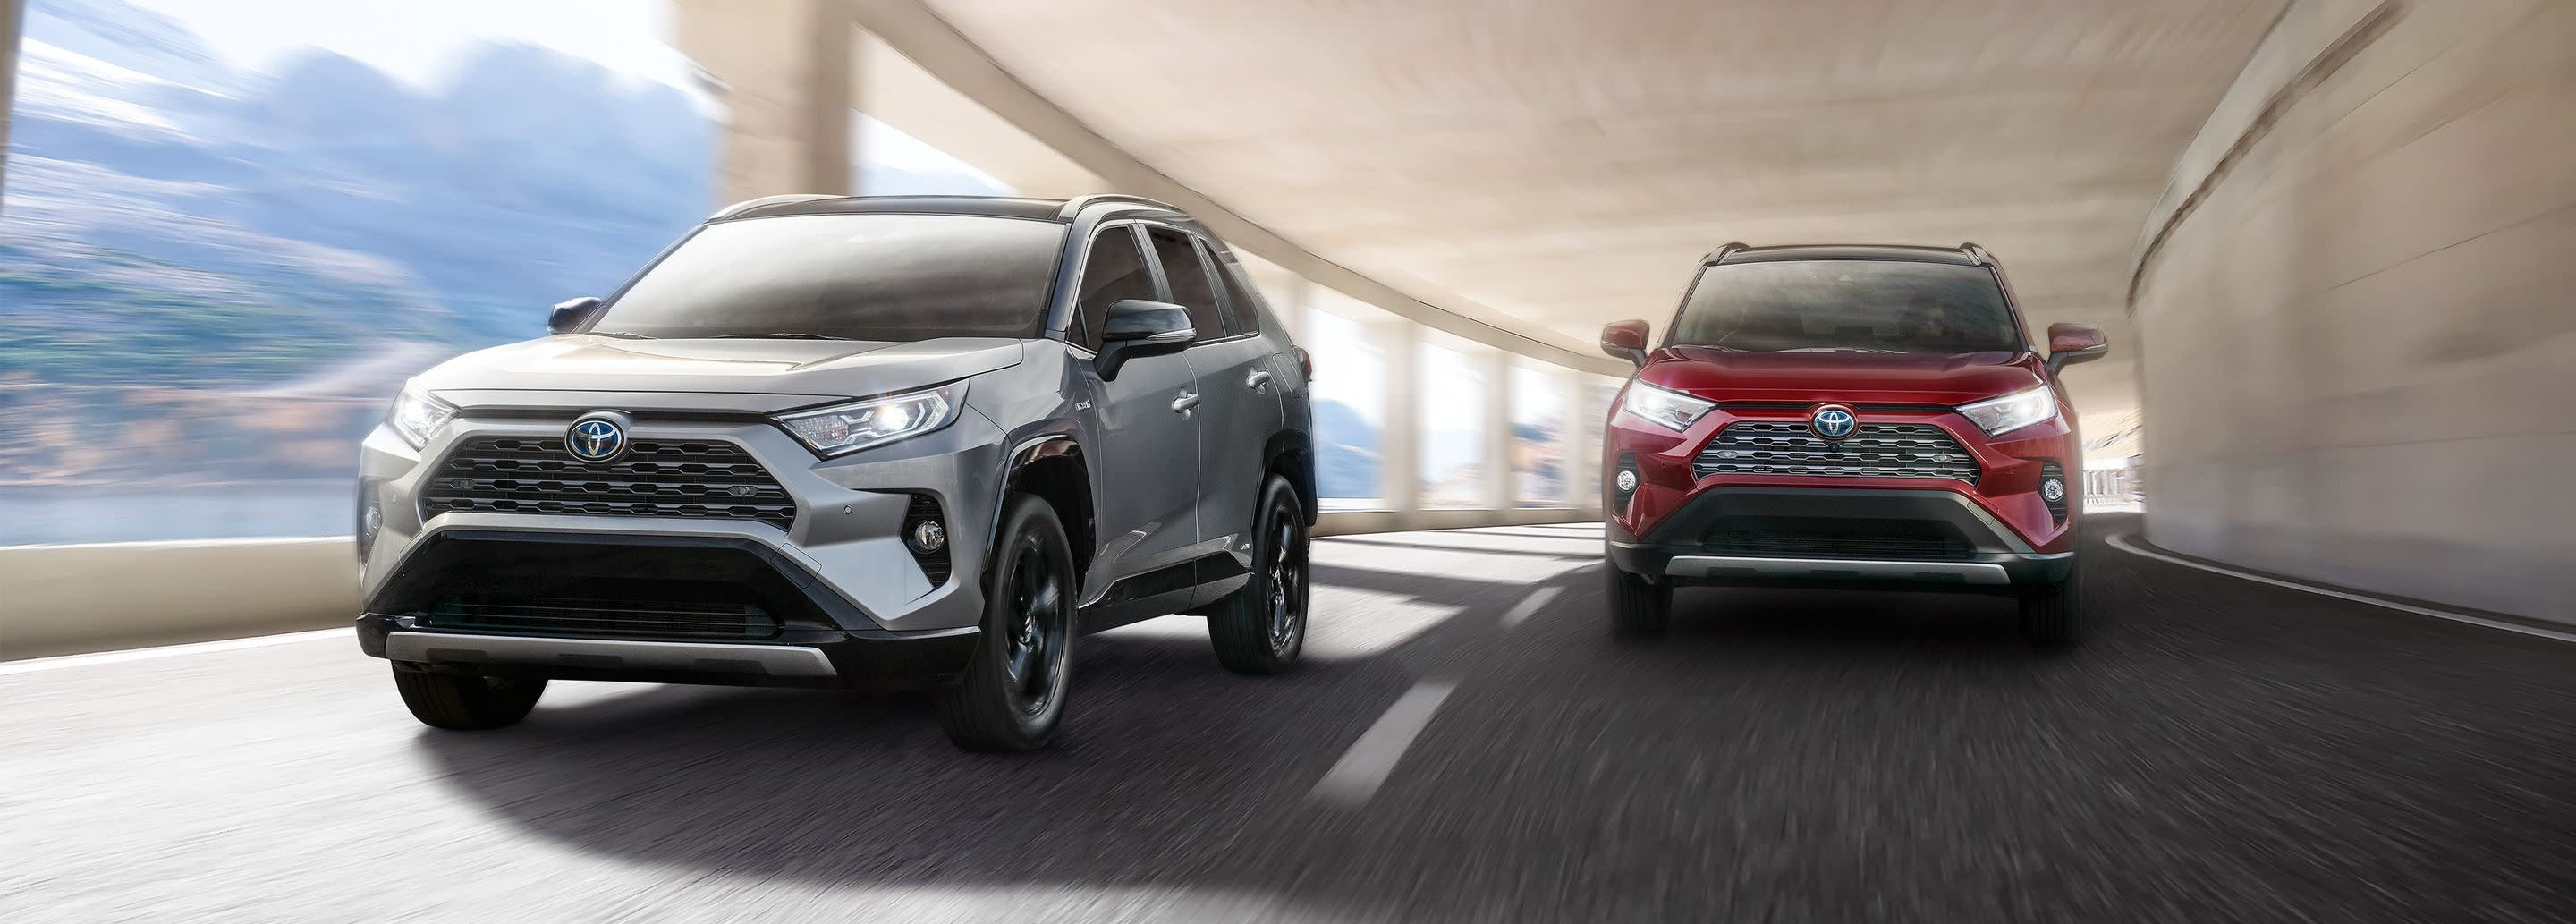 Choose a Traditional SUV or a Hybrid